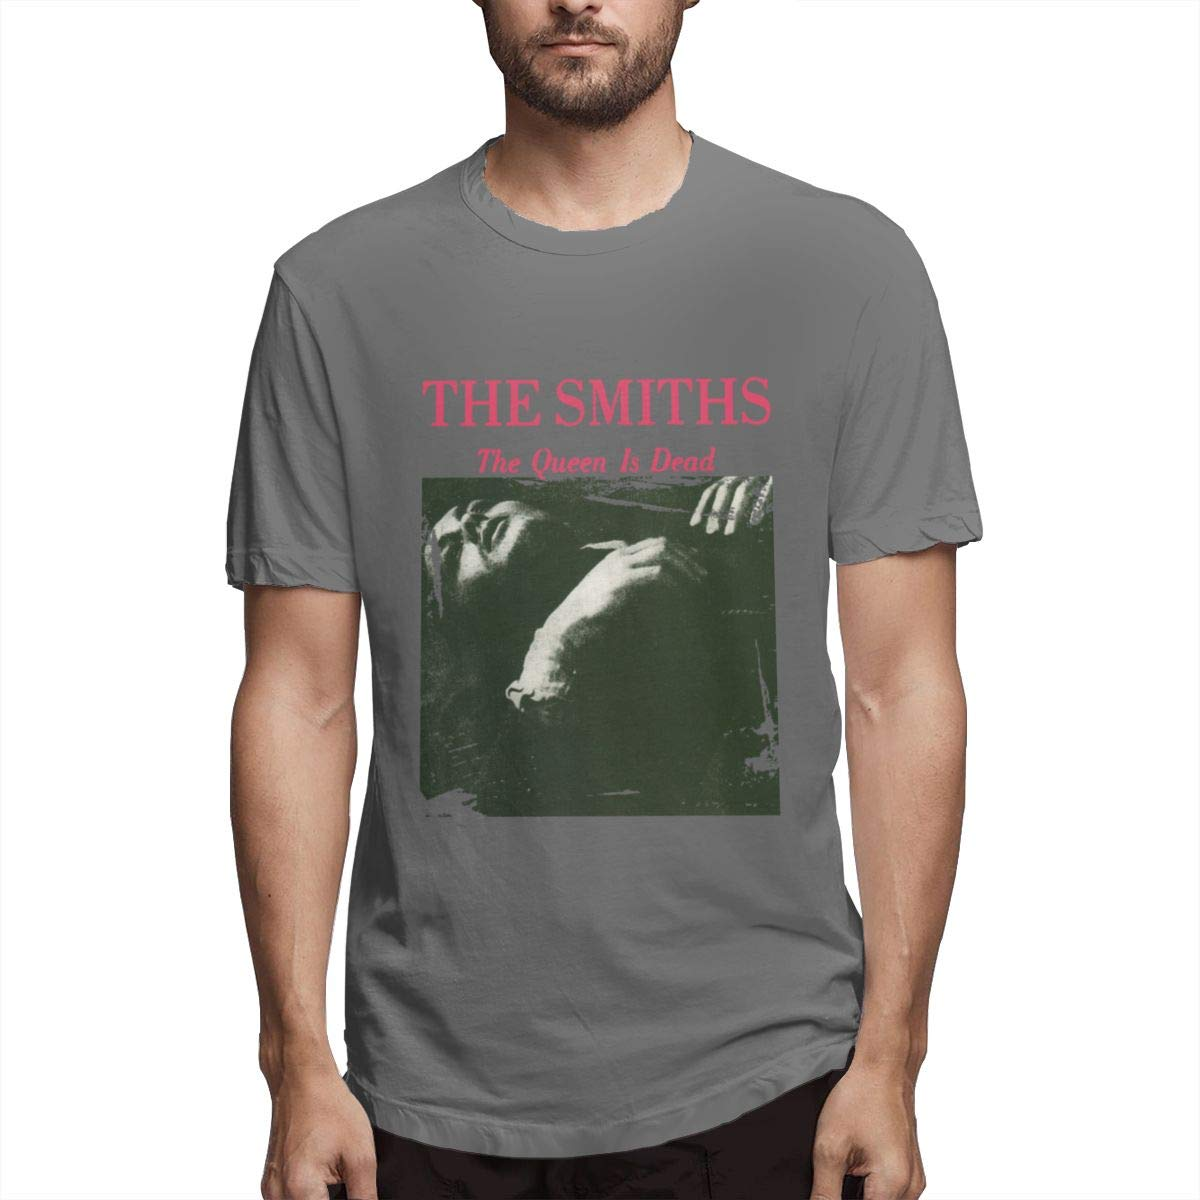 Seuriamin The Smiths Queen is Dead Mens Comfortable Hiking Short Sleeve T-Shirts